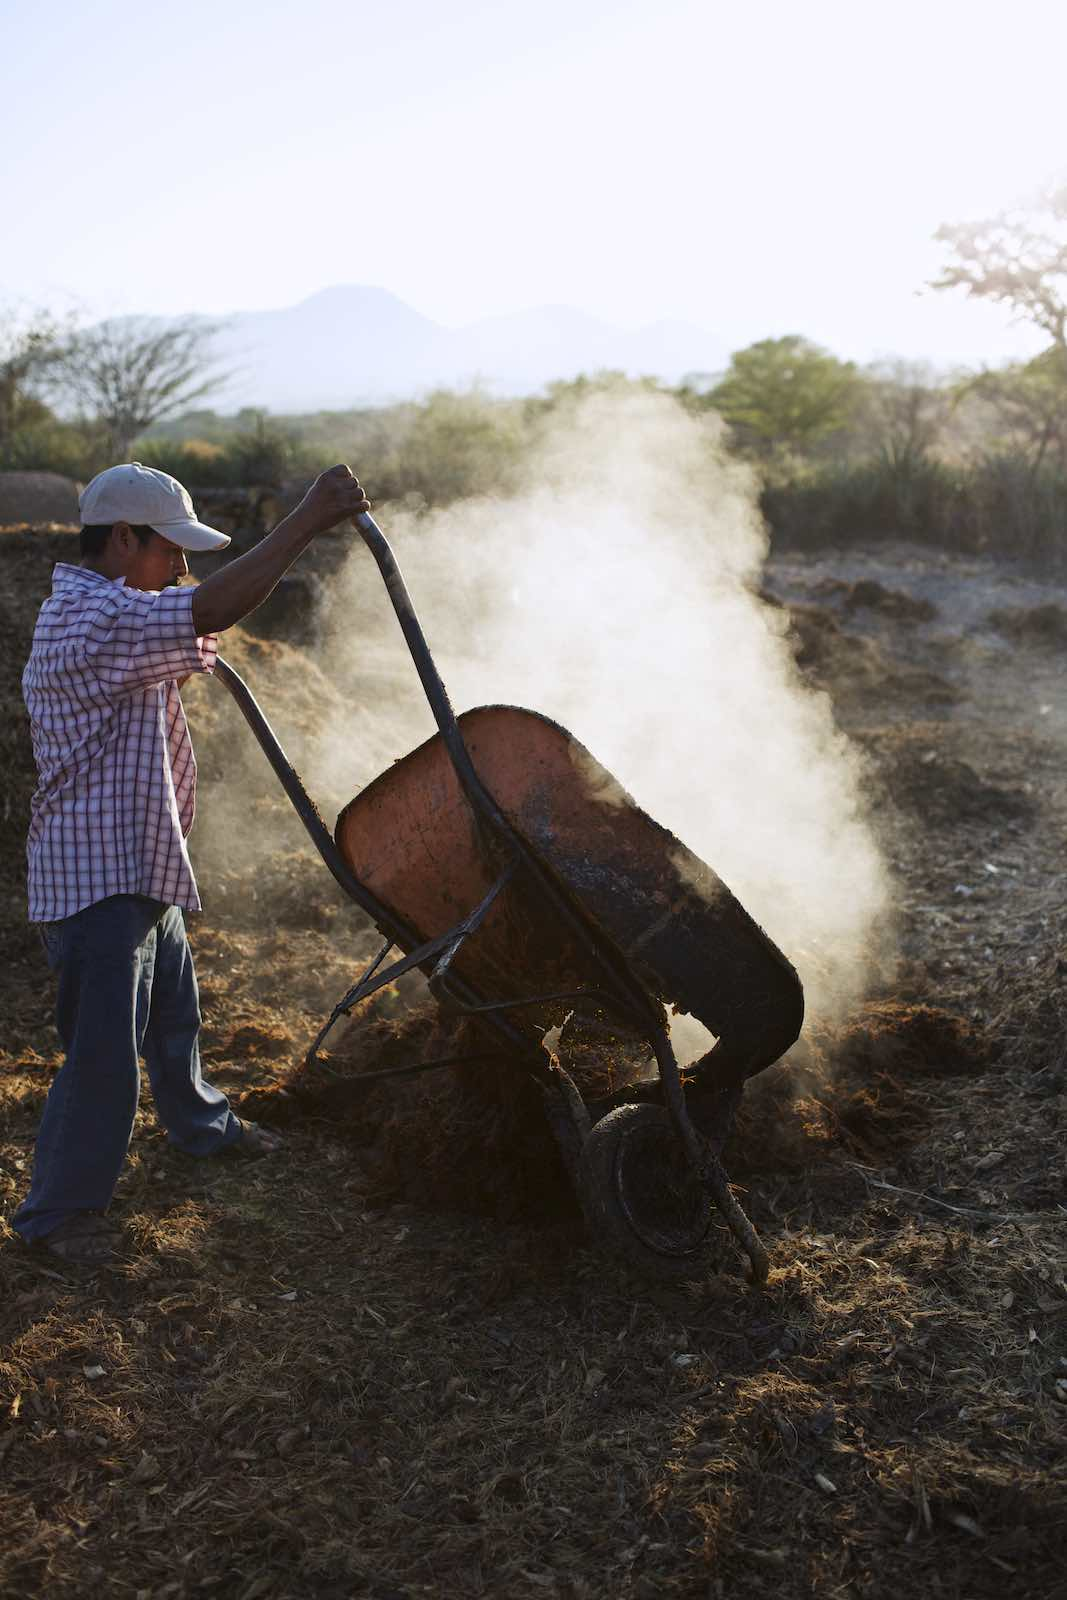 Farmer dumping wheel barrel of agave fibers.